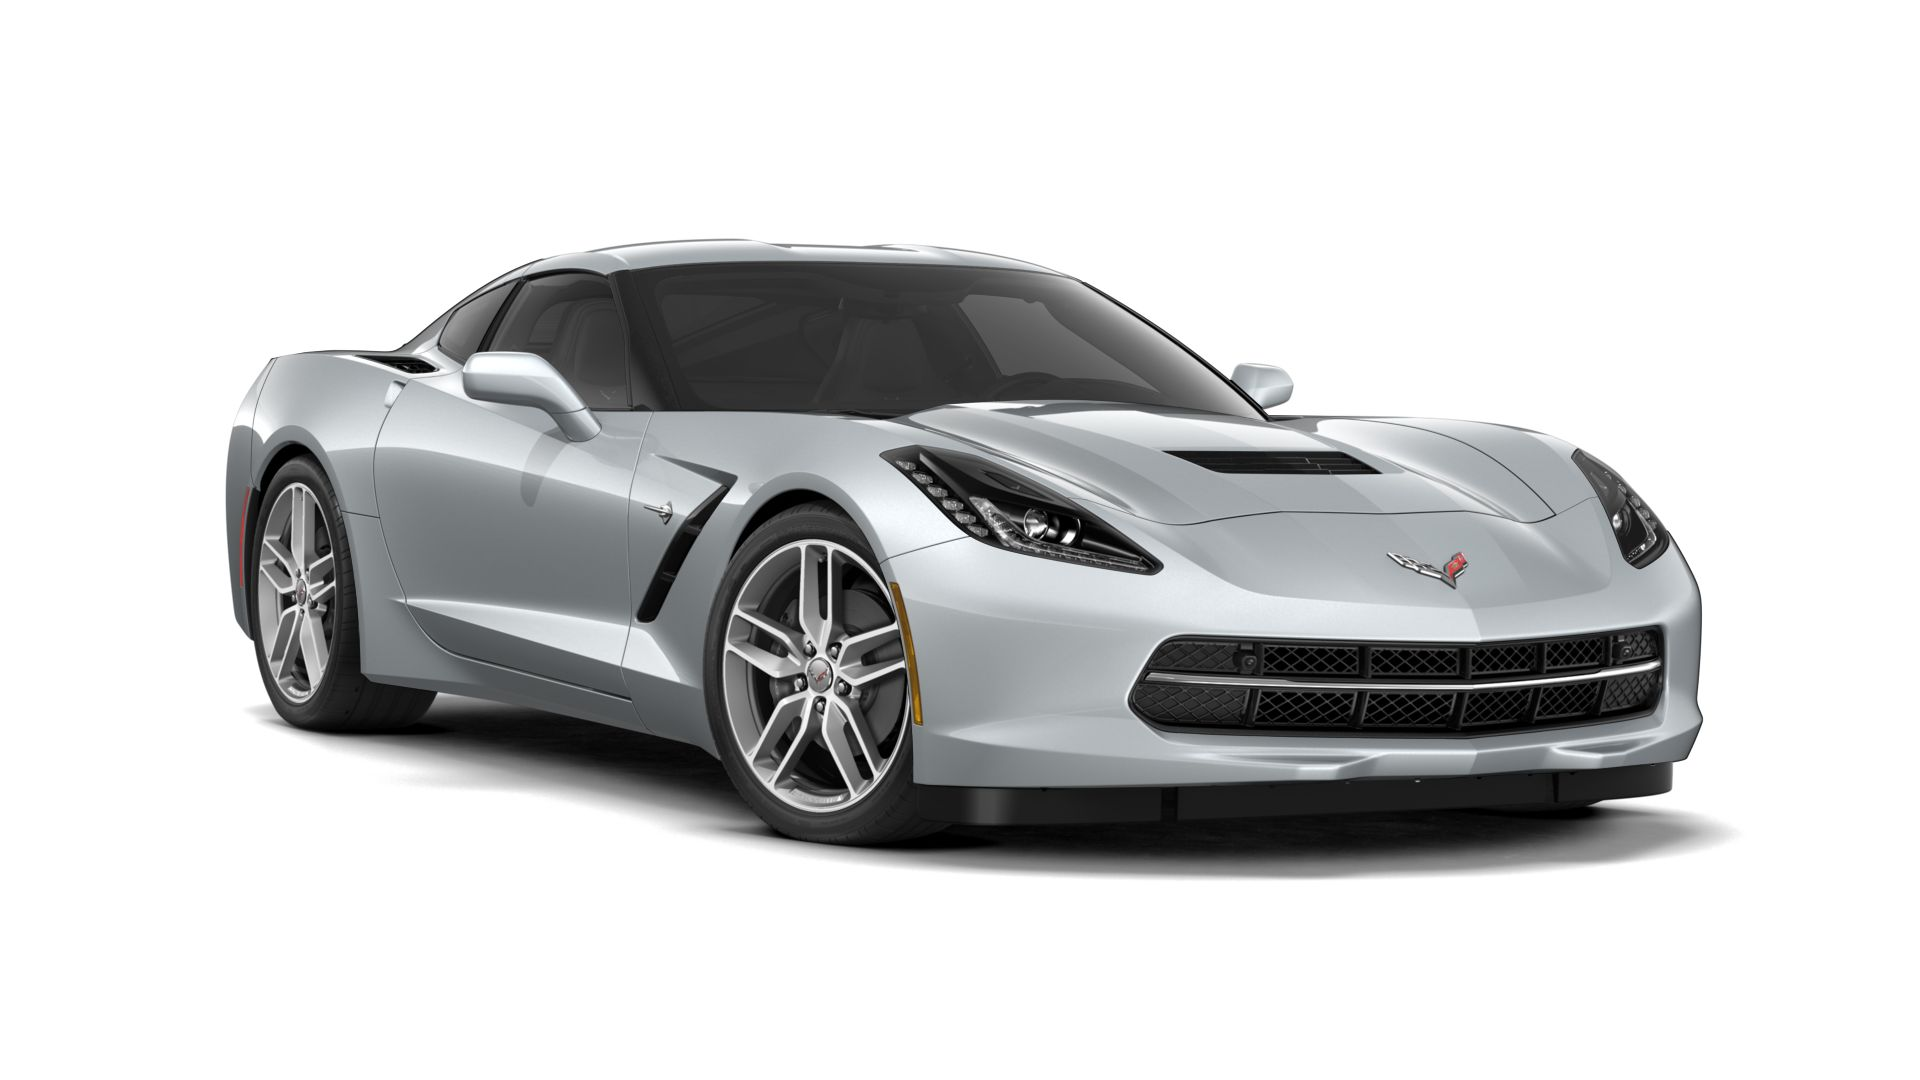 2019 Chevy Corvette 2LT